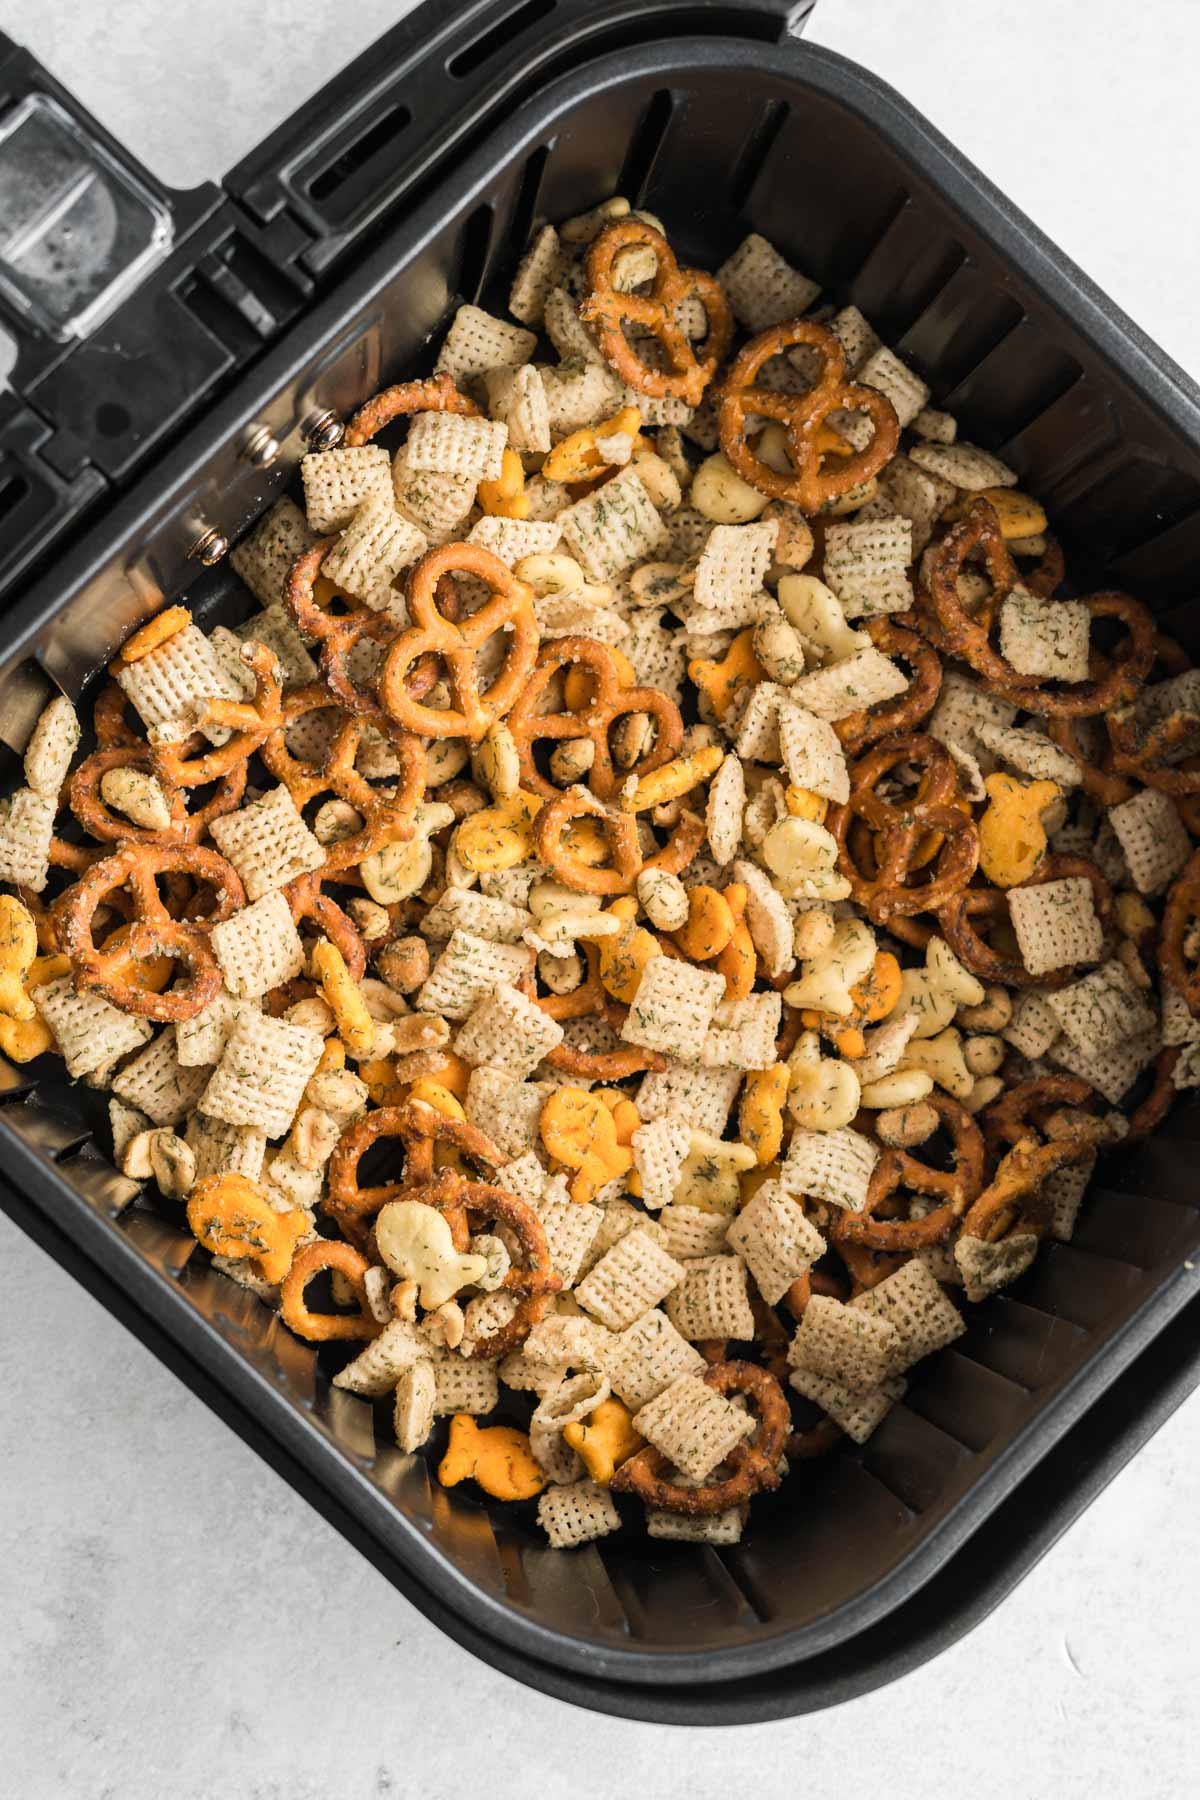 Snack mix in a thin layer in an air fryer basket.